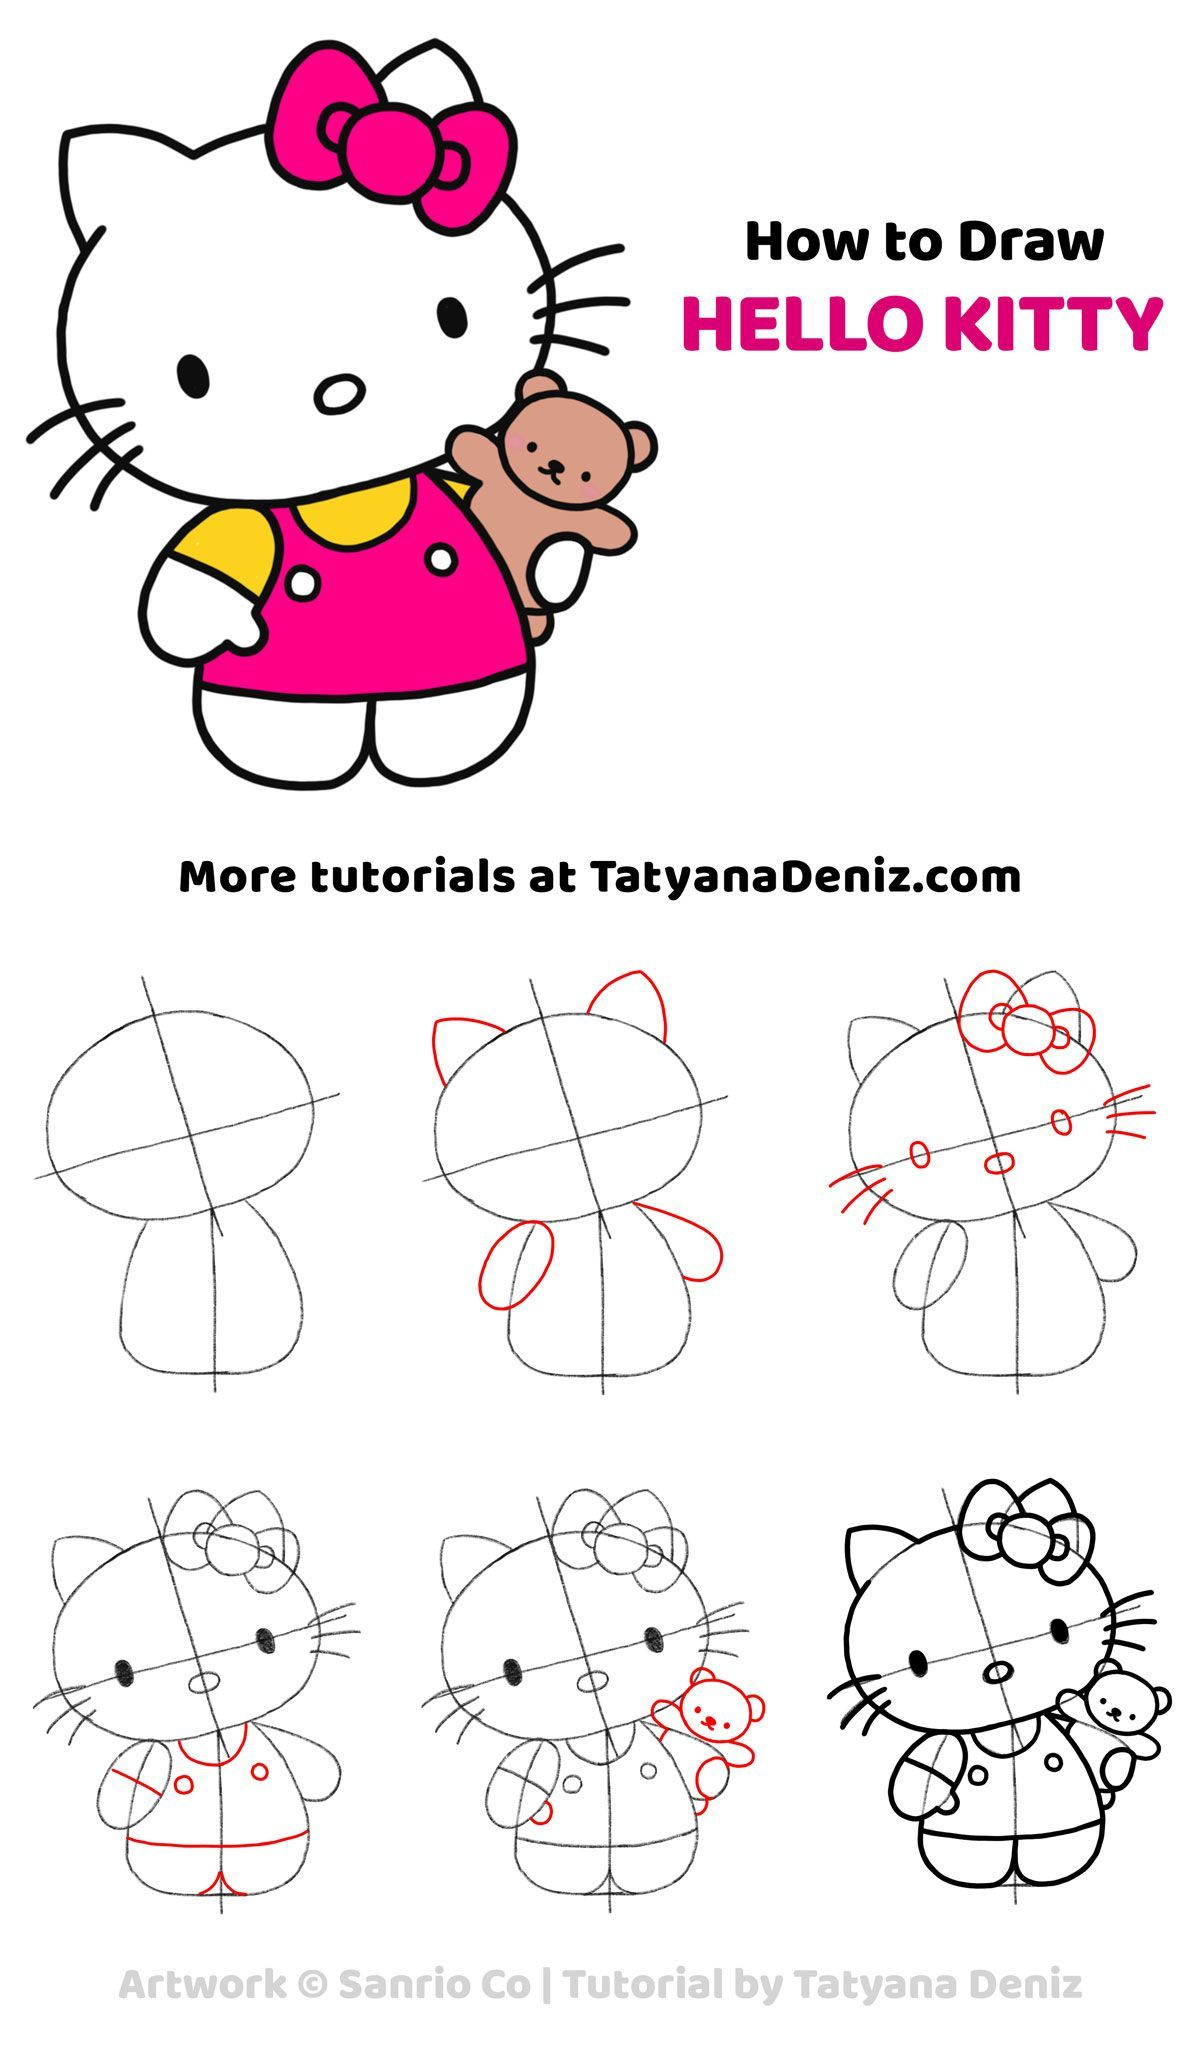 Easy Step By Step Drawing Tutorial To Learn How To Draw Hello Kitty Click The Pin For More Free Drawing Tut Zeichnen Basteln Lernen Zeichnung Zeichnen Einfach